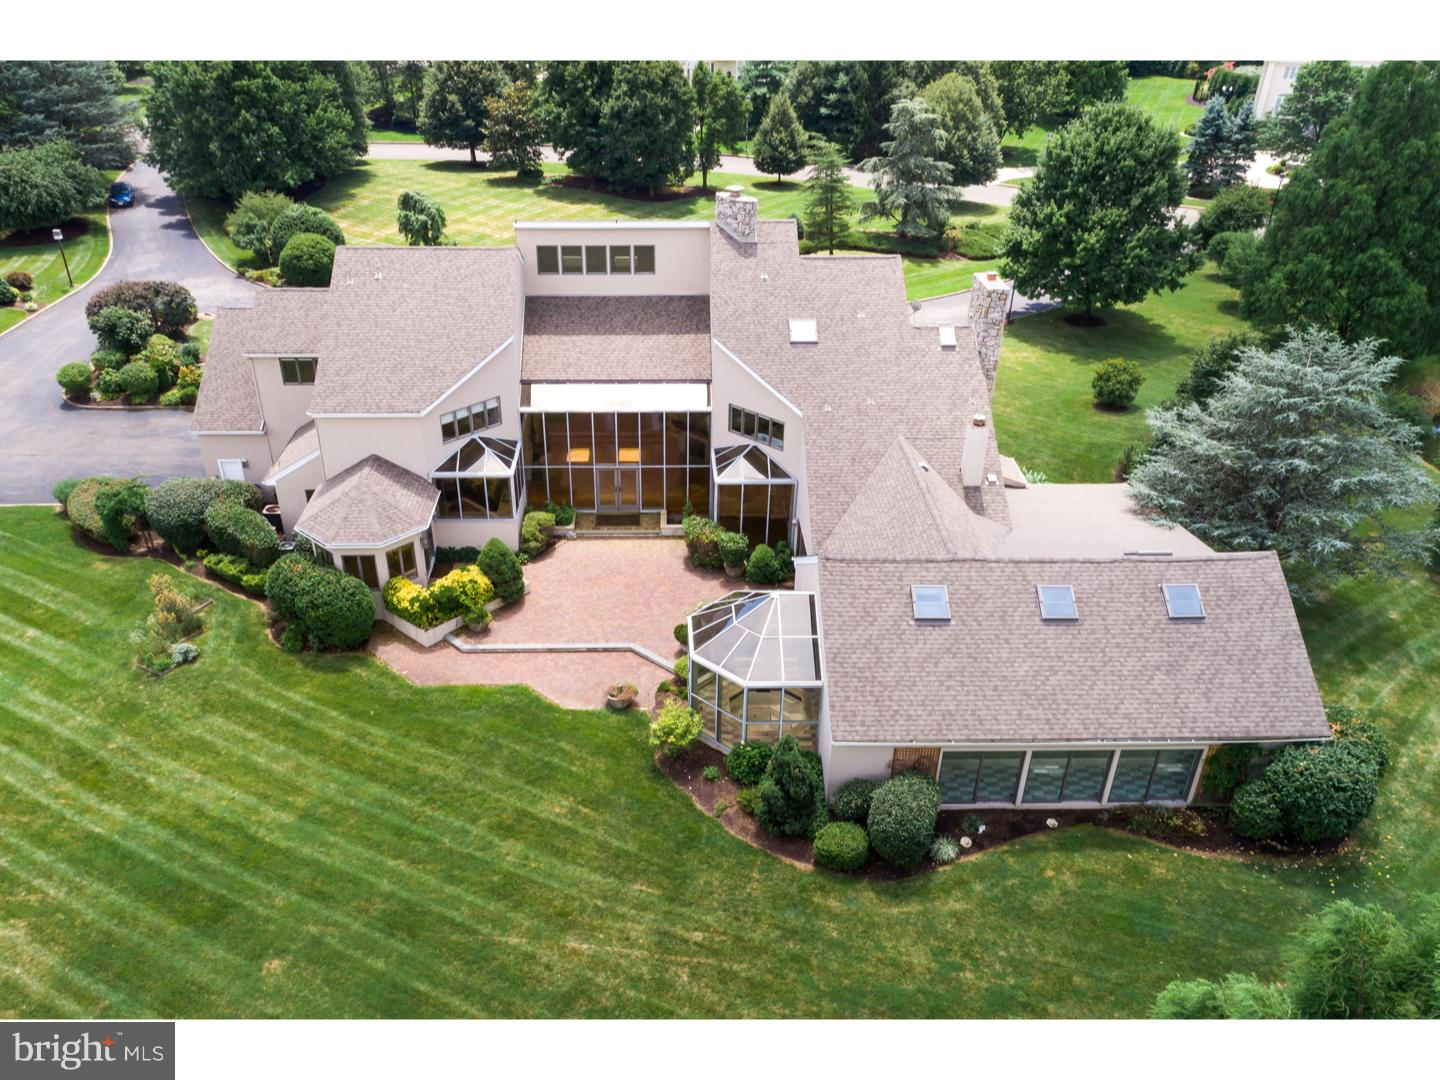 779 ALLISON COURT, MOORESTOWN, NJ 08057